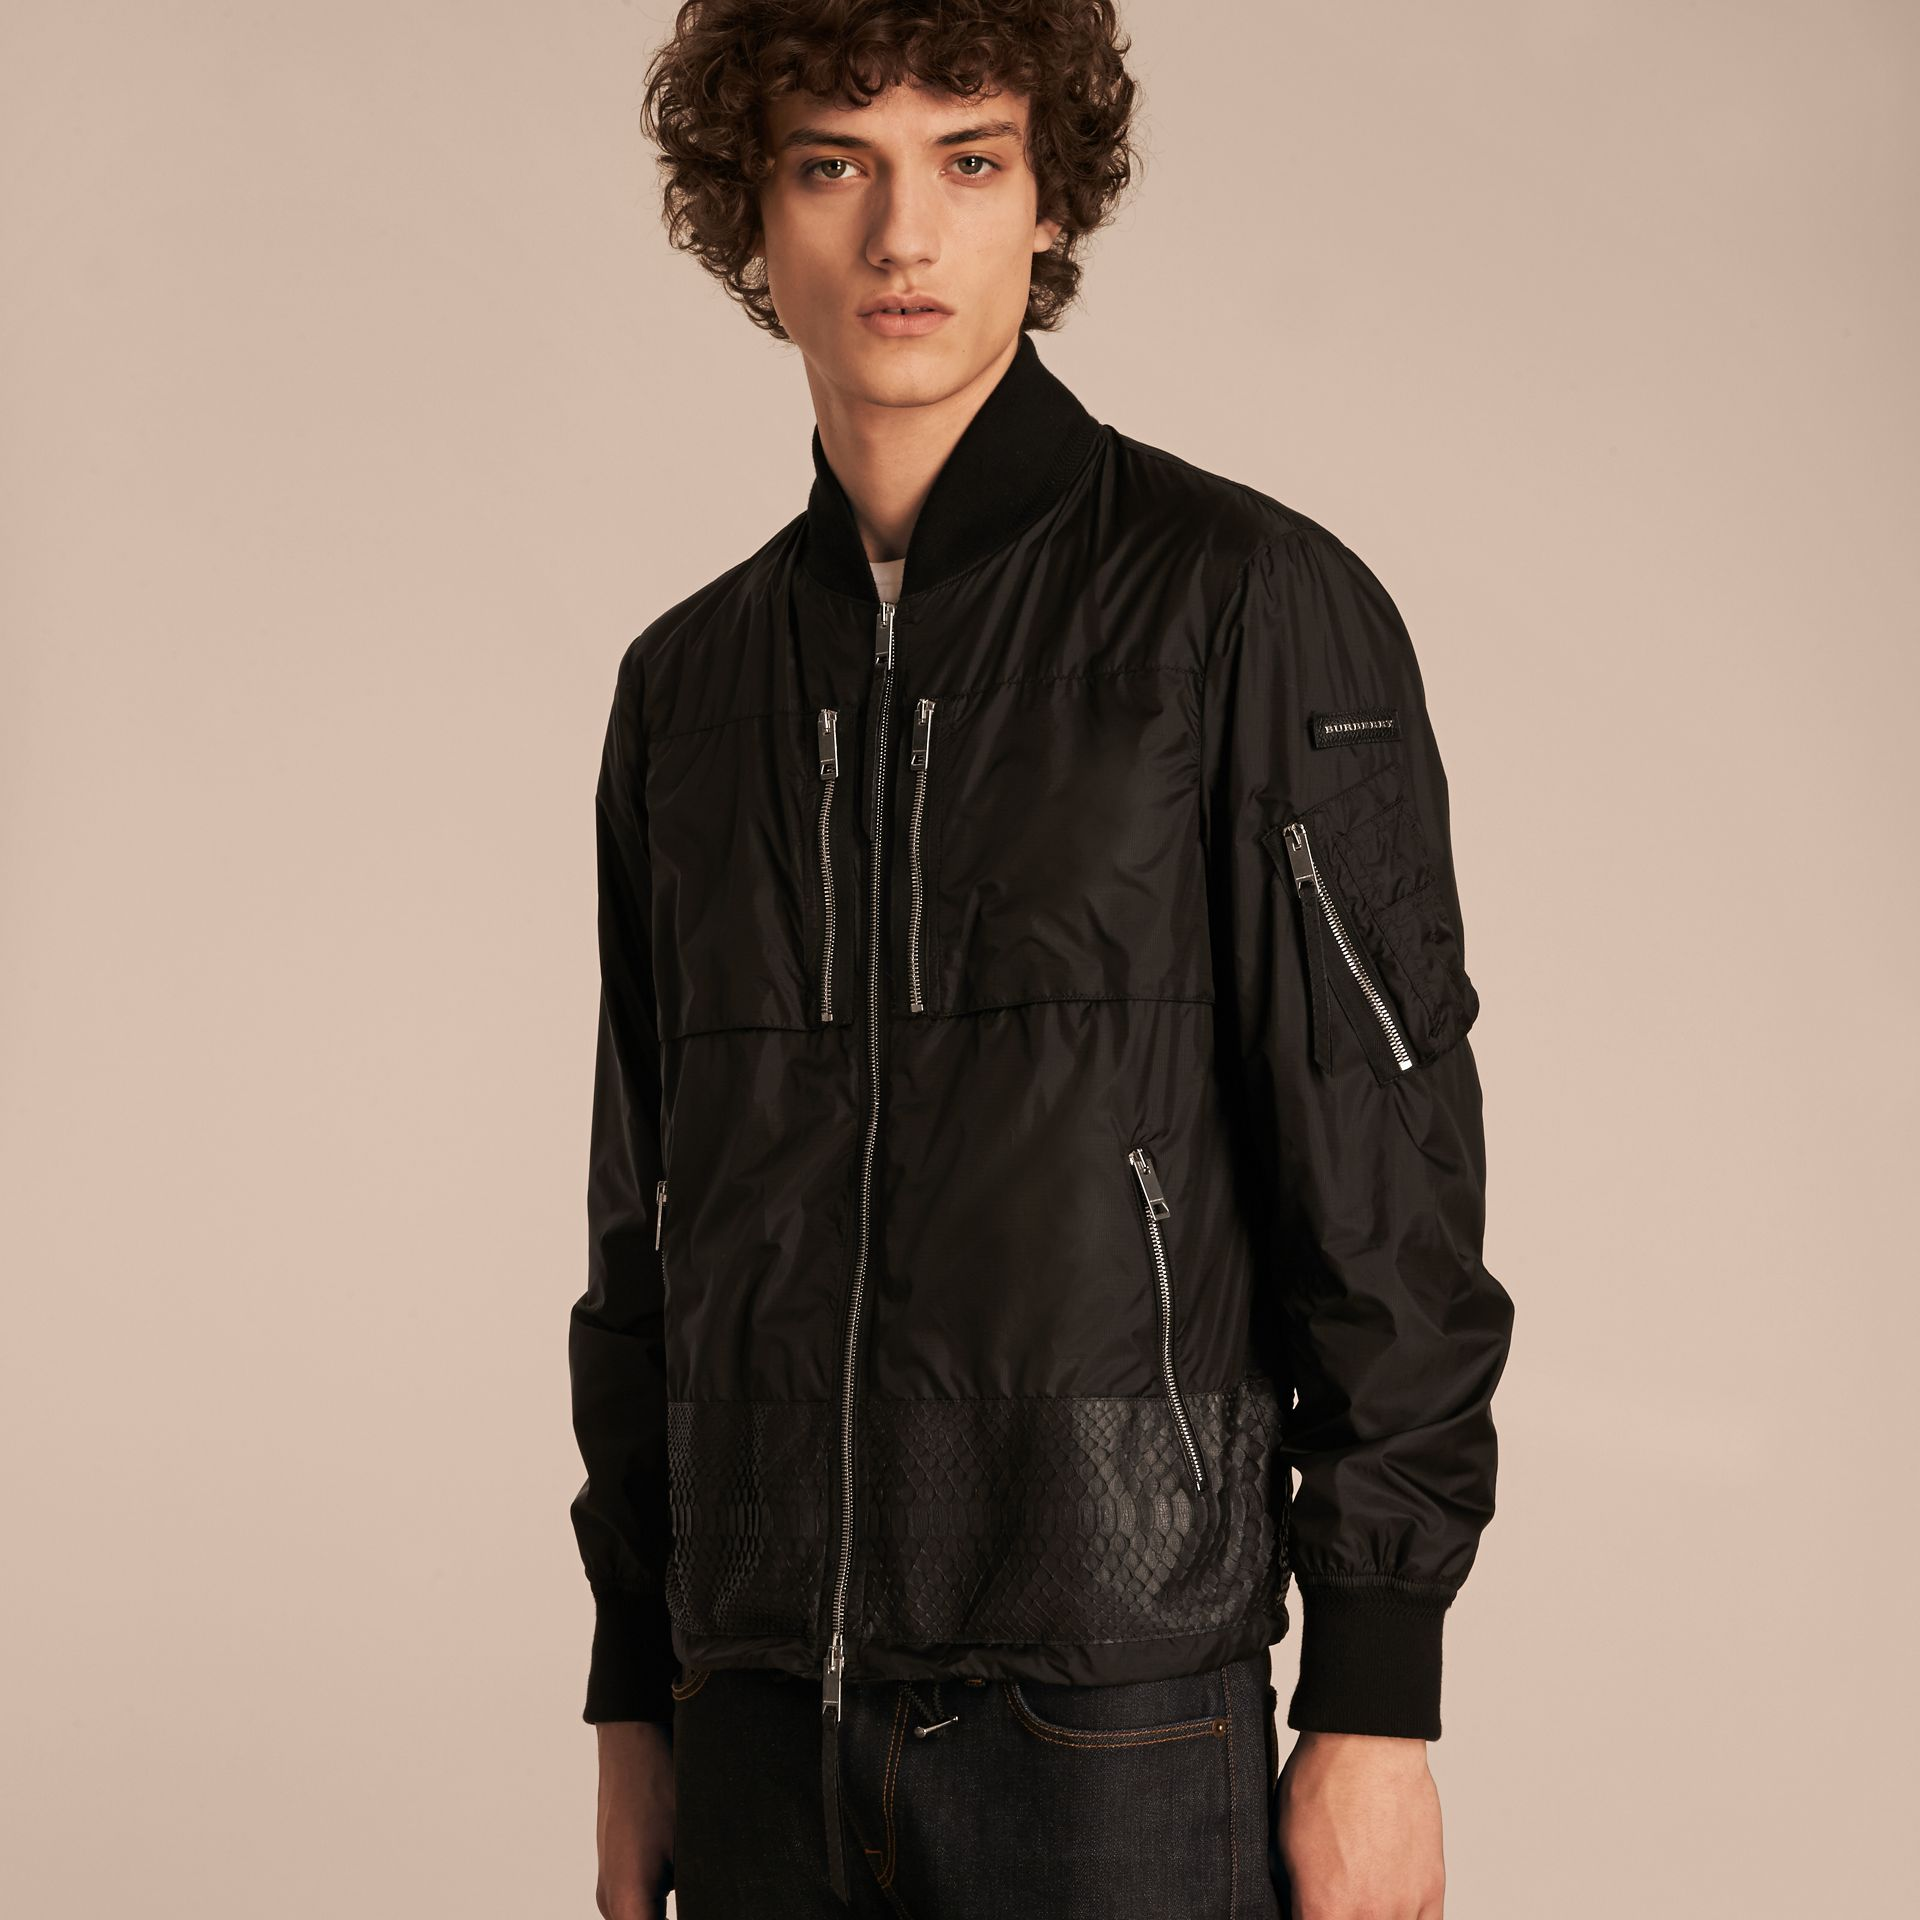 Lightweight Technical Bomber Jacket with Snakeskin in Black - Men | Burberry - gallery image 6